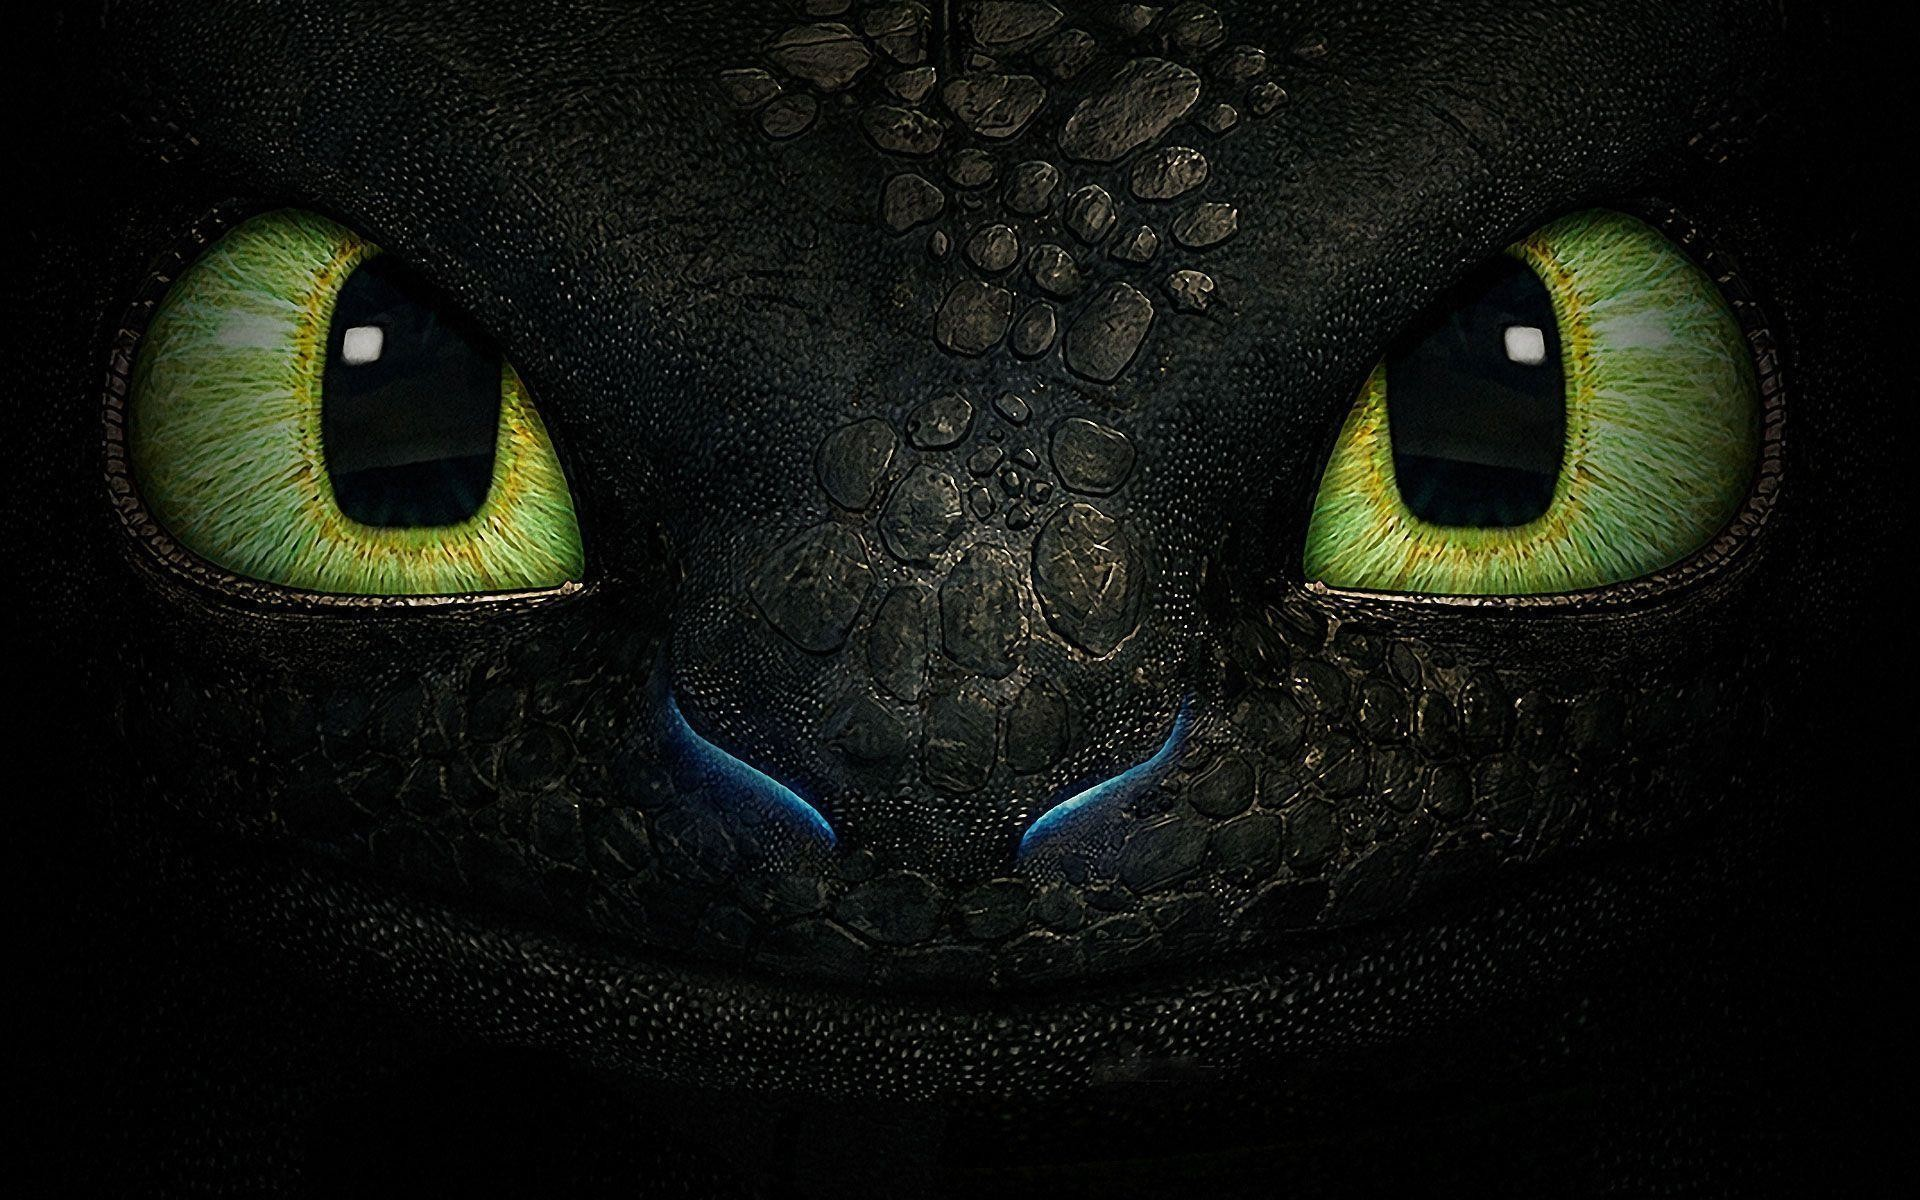 … toothless wallpapers wallpaper cave …